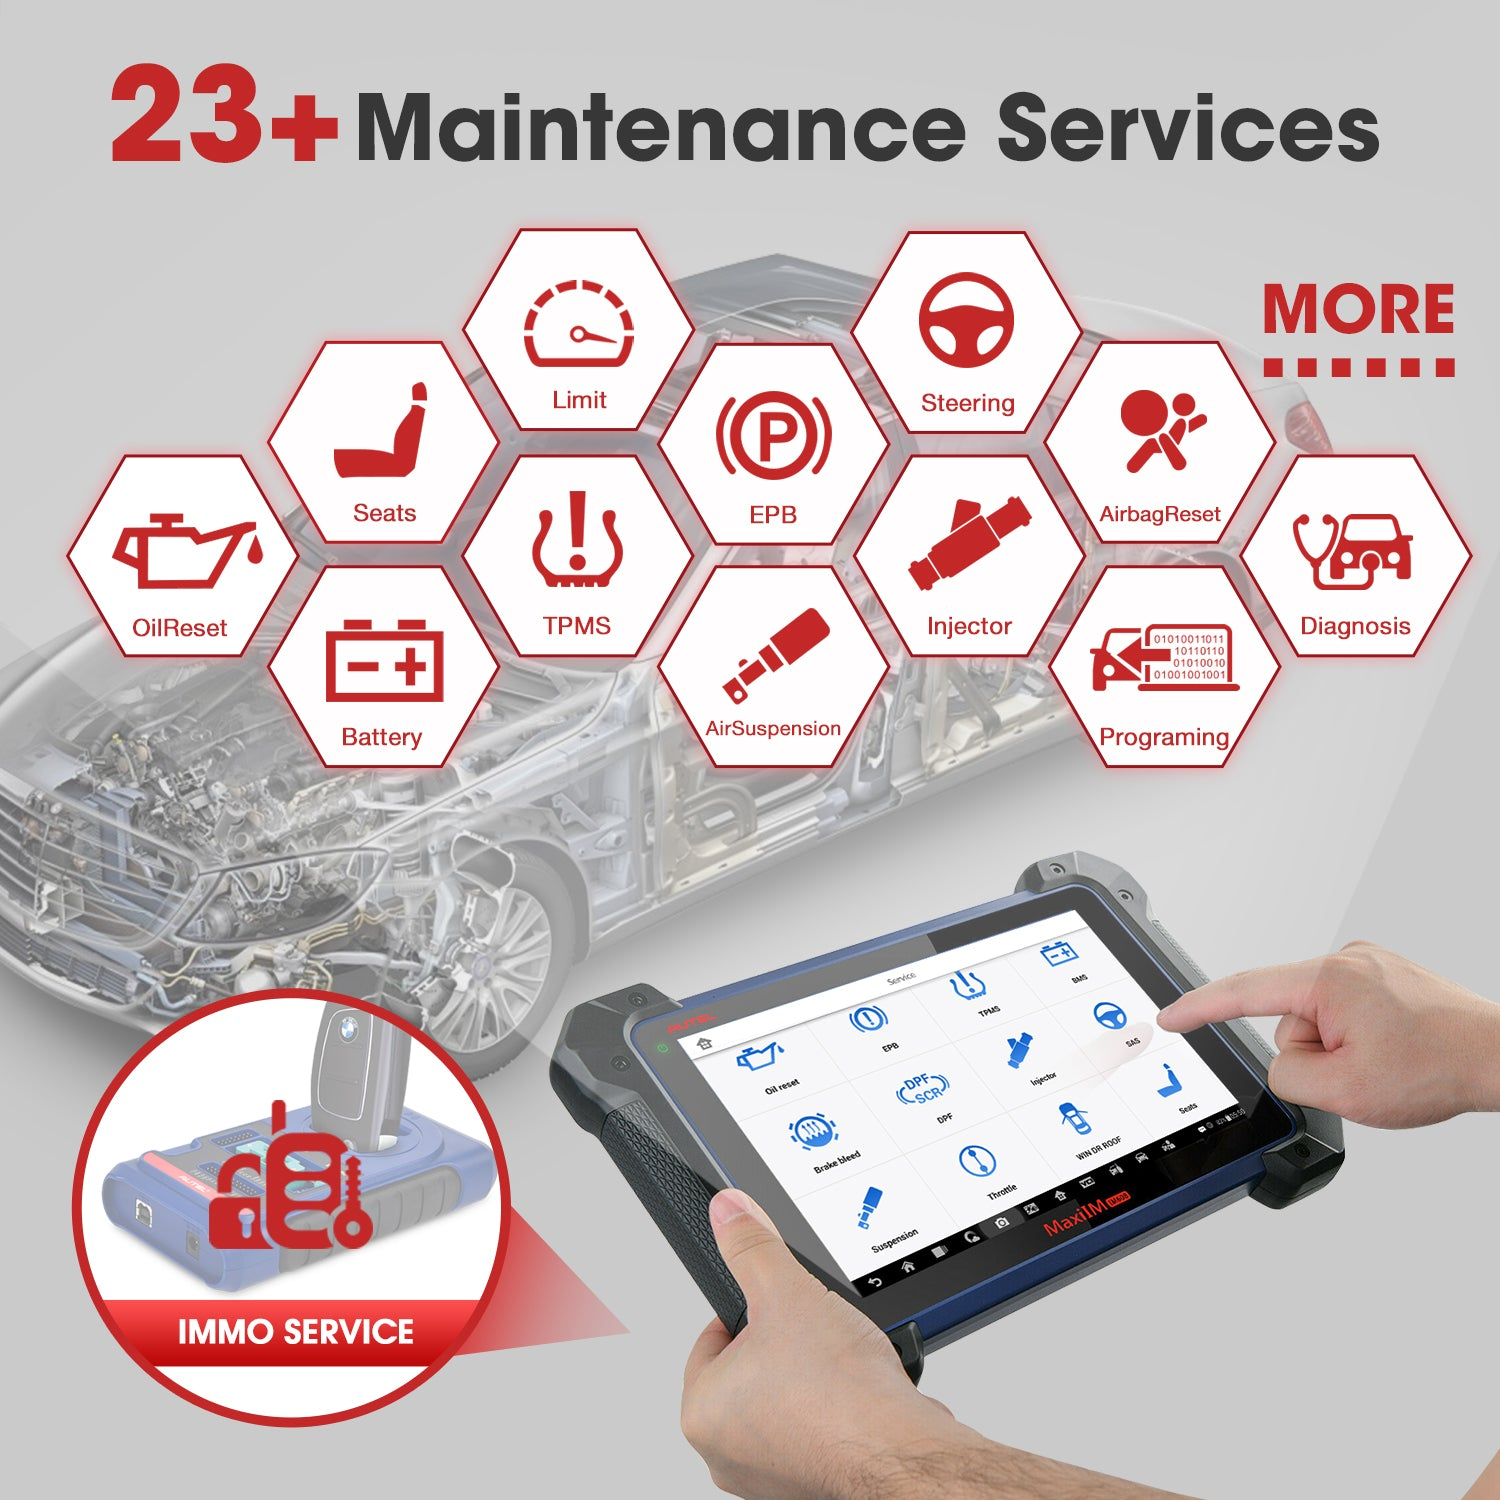 IM608 PROKPA can provides 23+ maintenance service functions